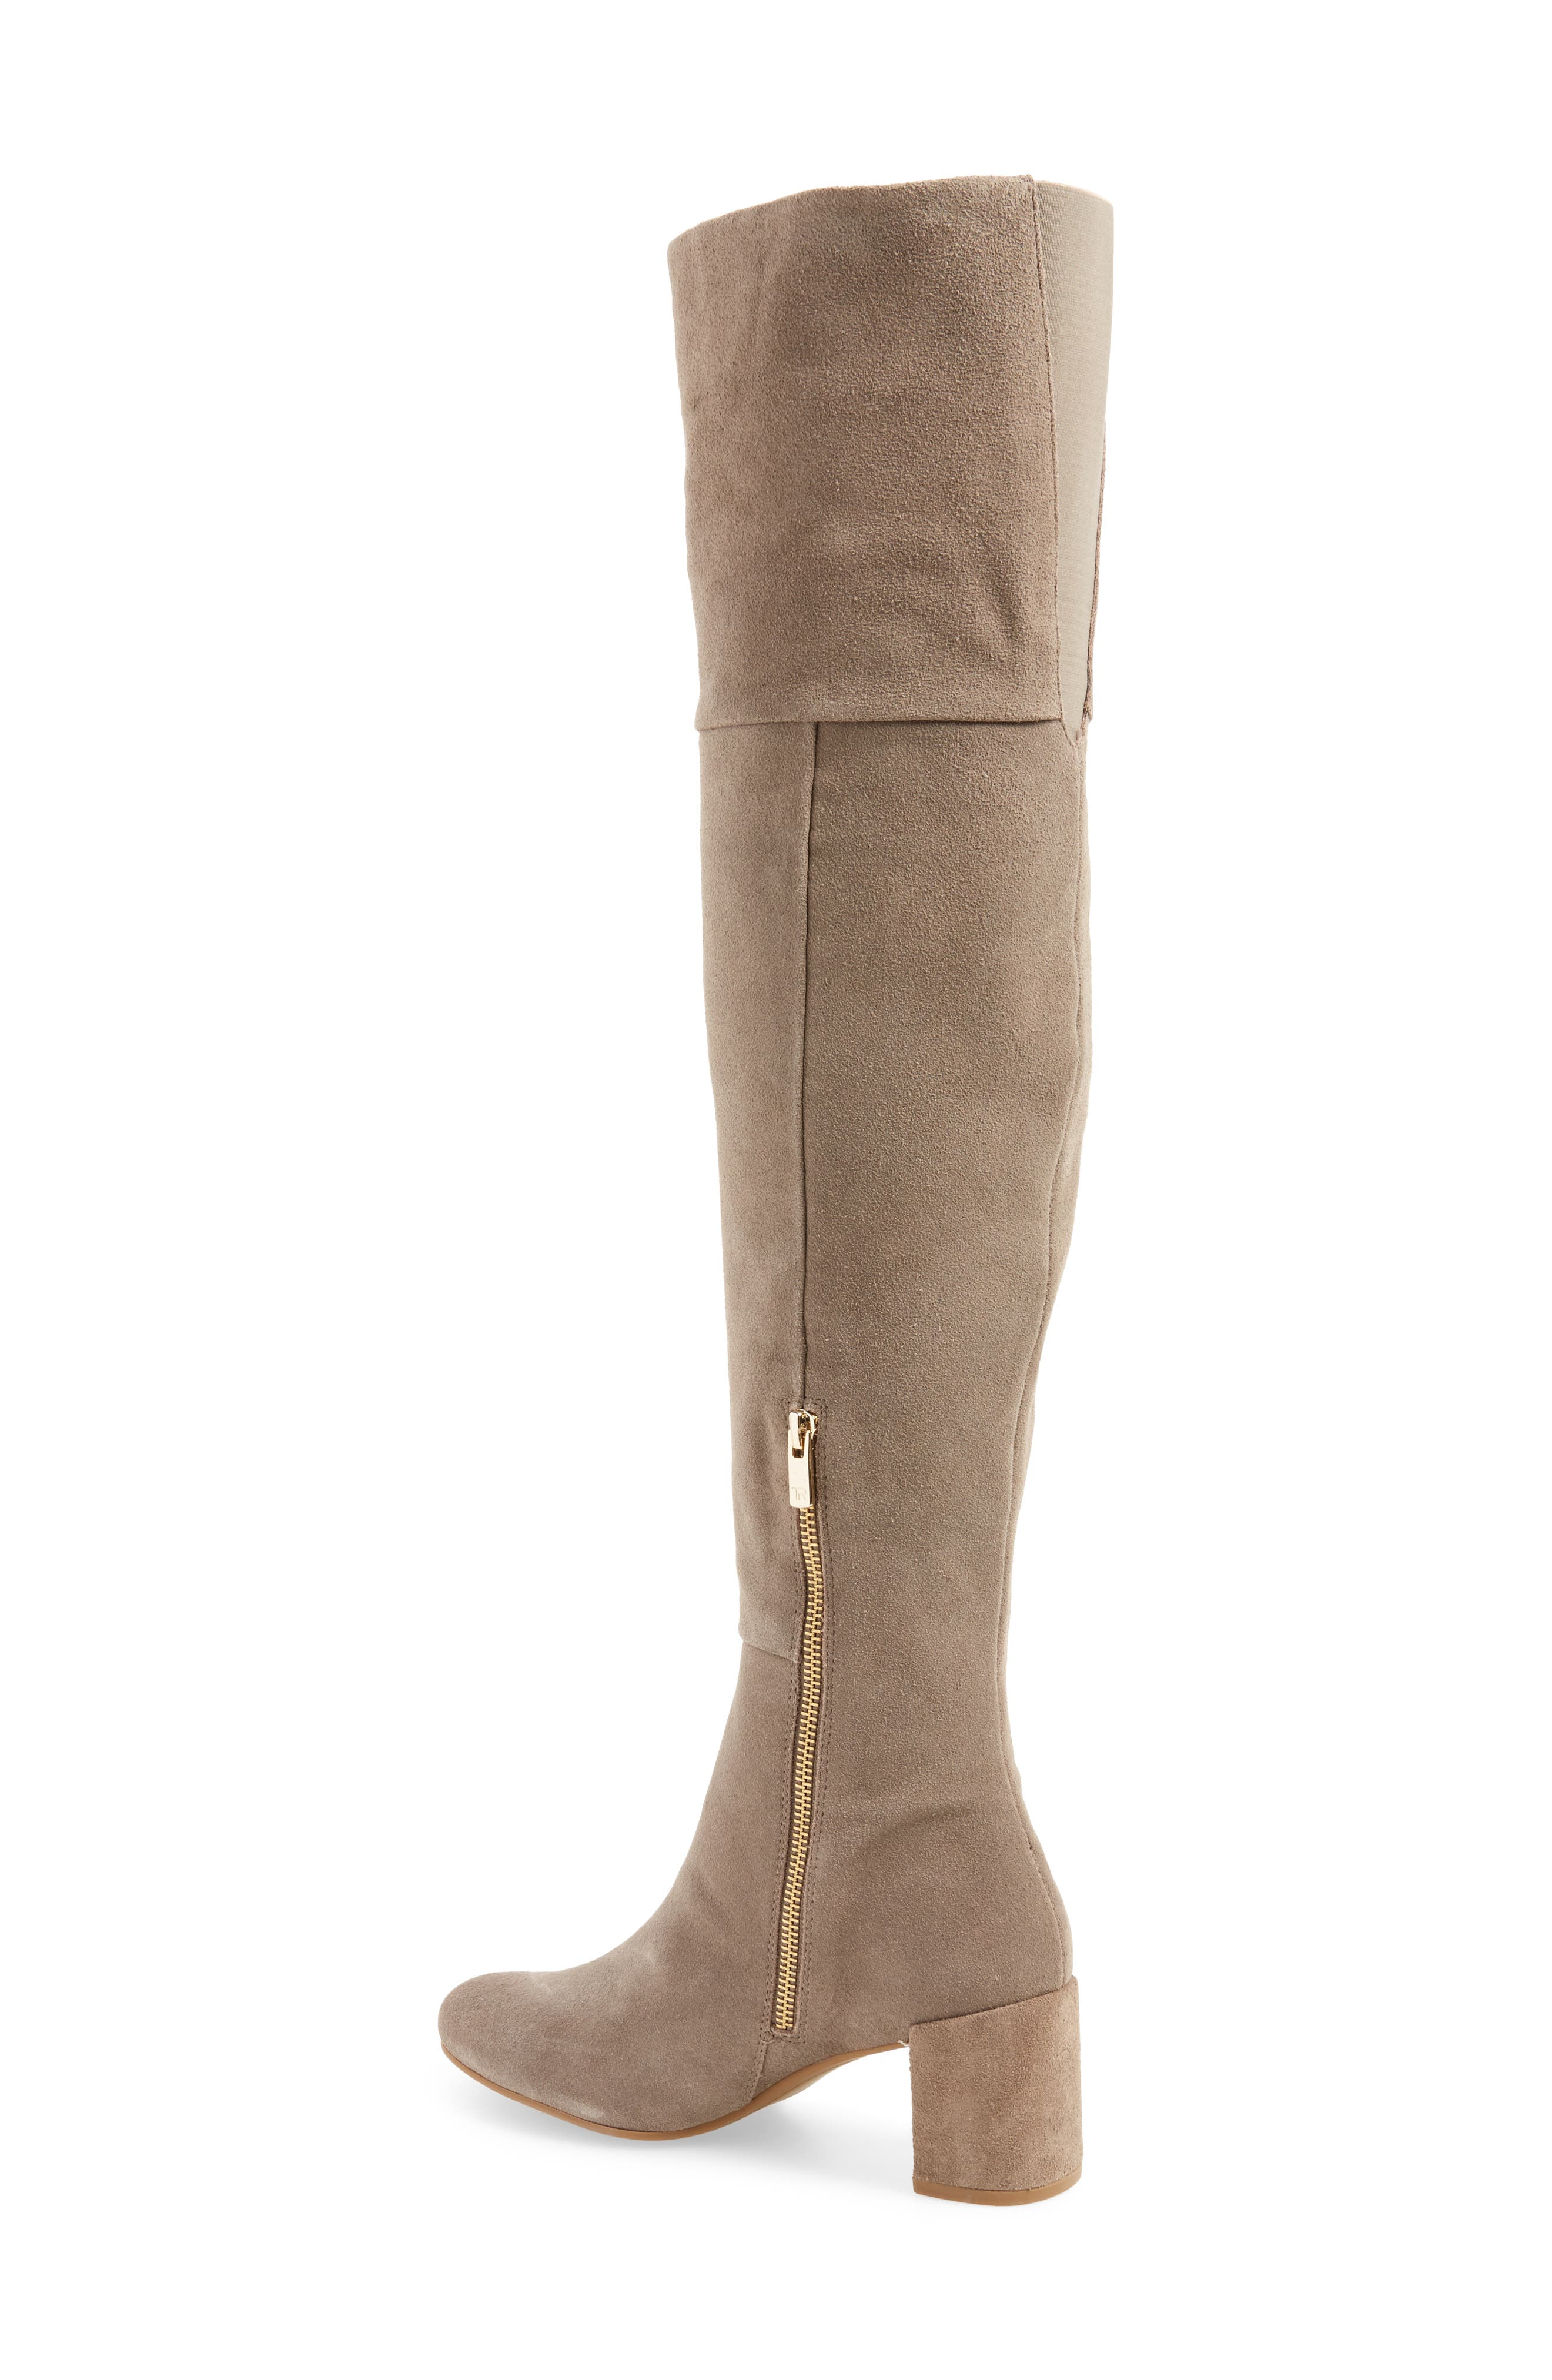 Catherine Over the Knee Boot,                             Alternate thumbnail 4, color,